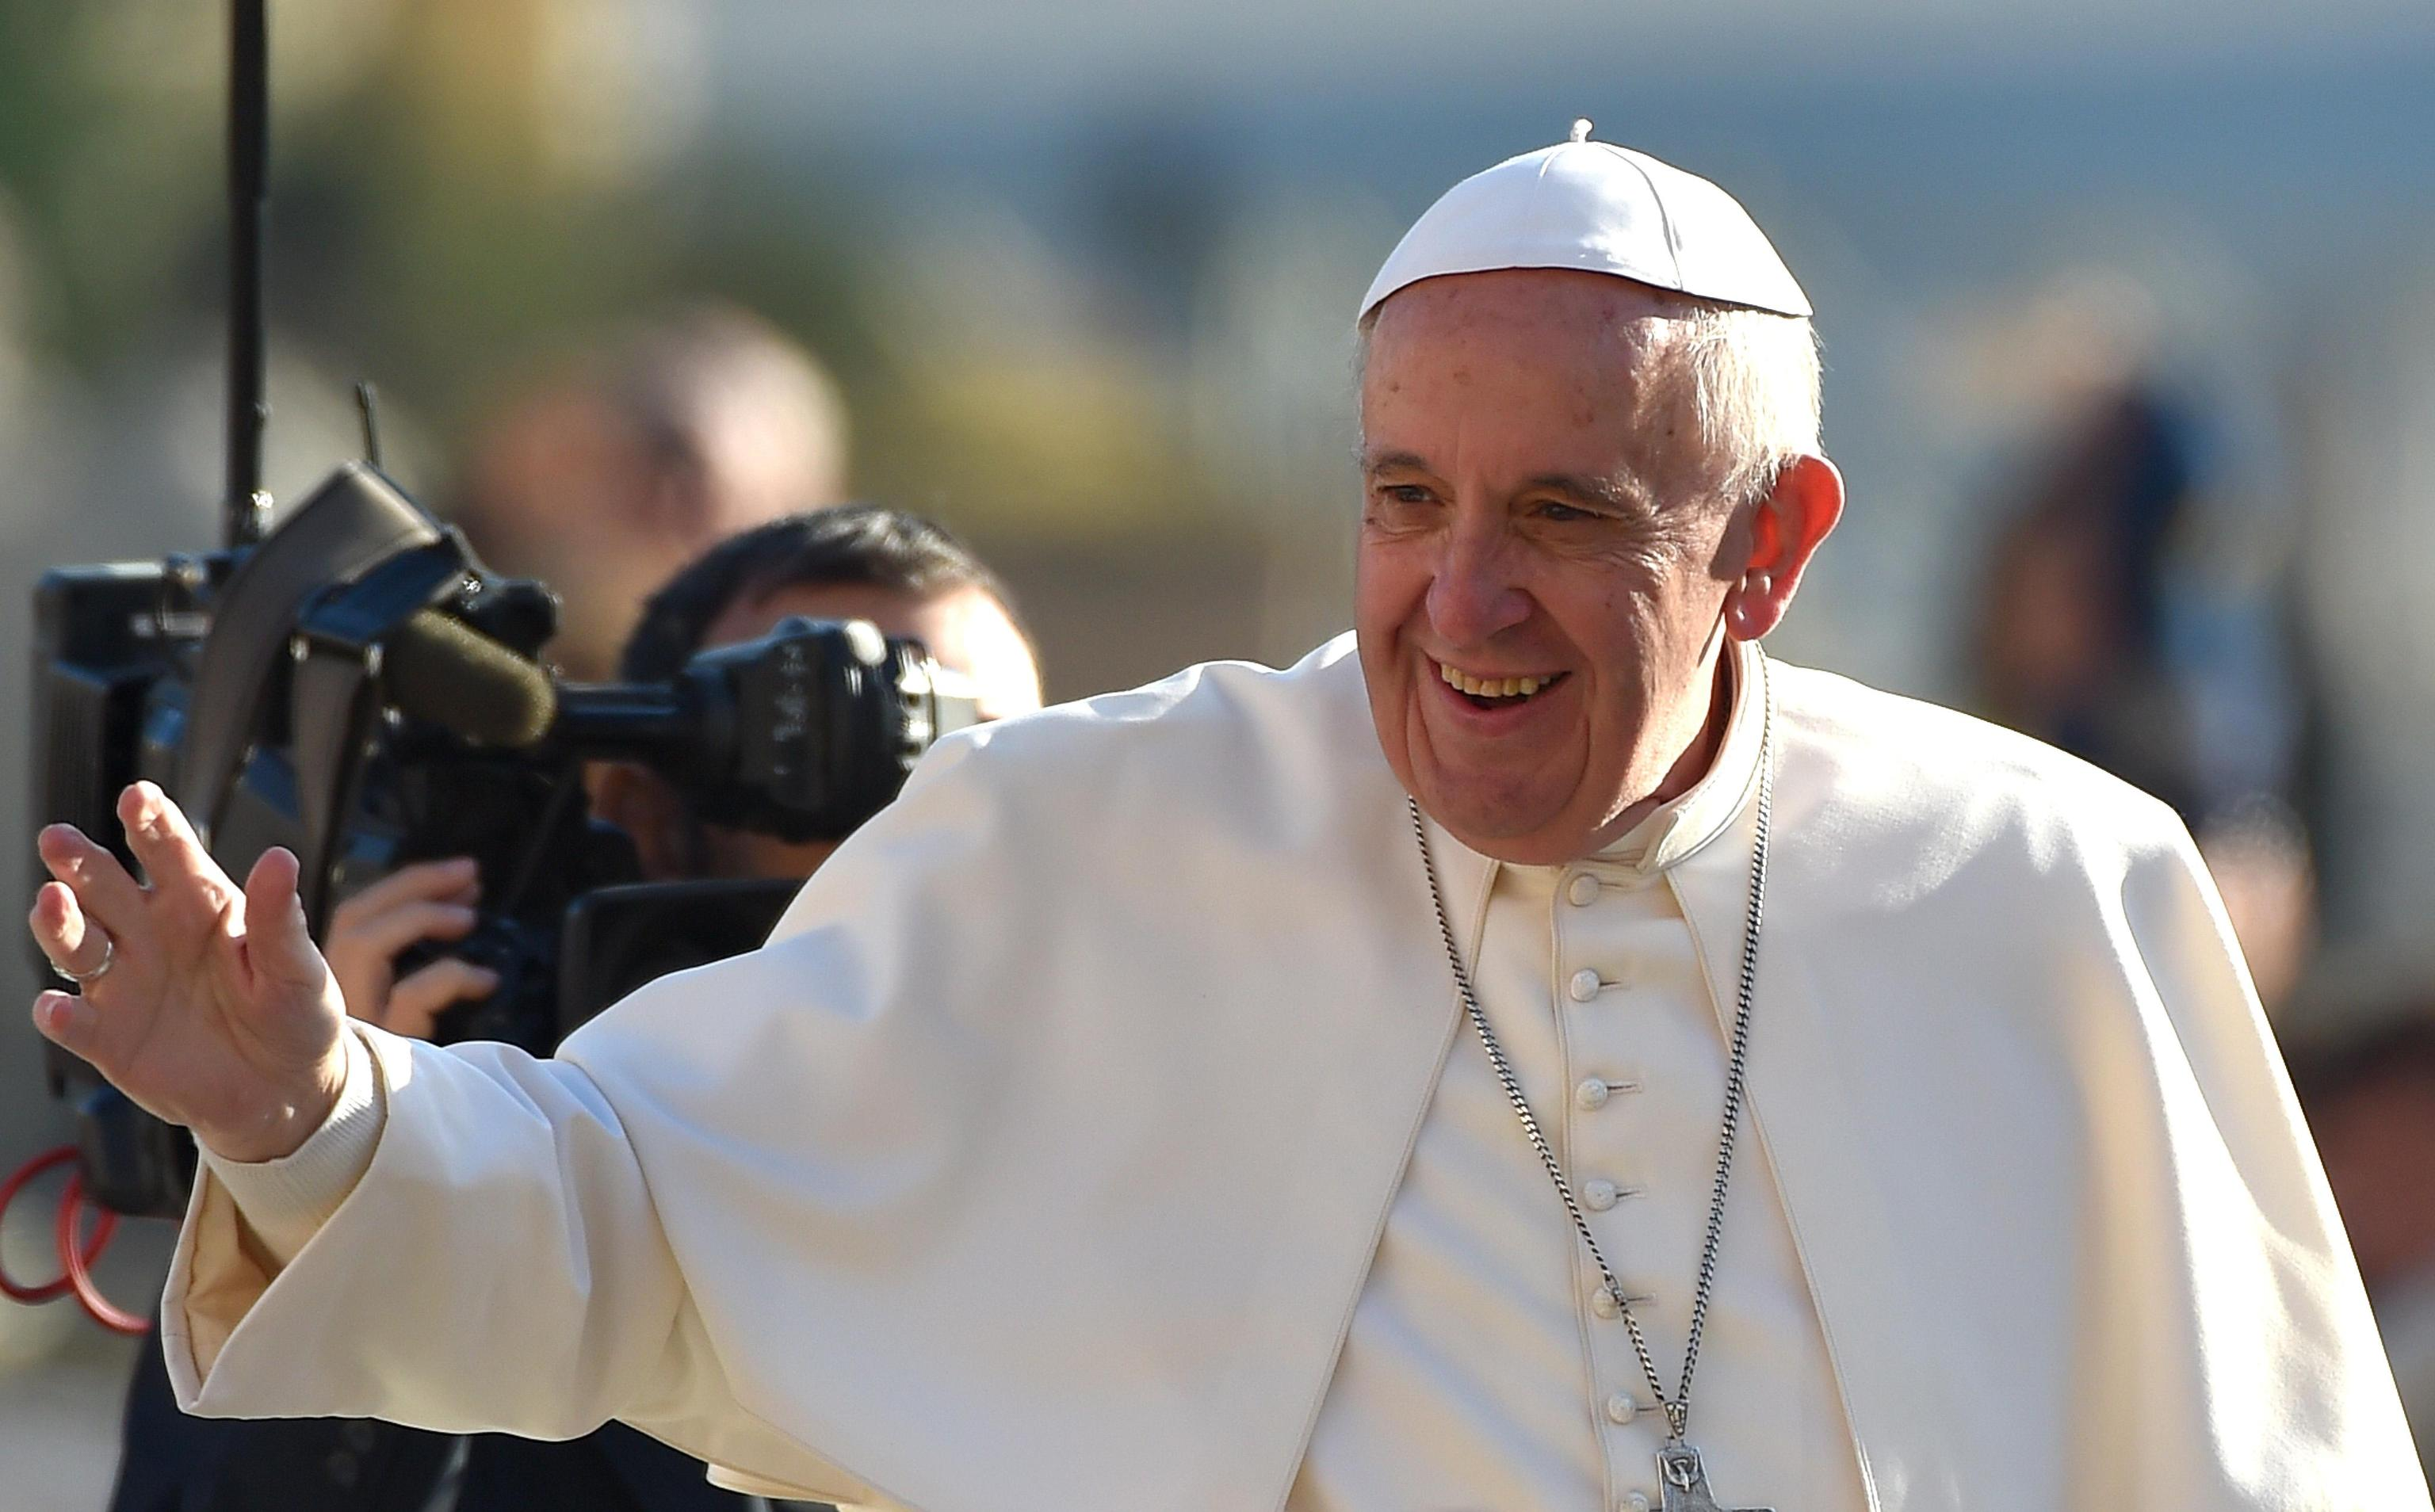 Pope Francis during the General Audience of Wednesday December 2nd 2015